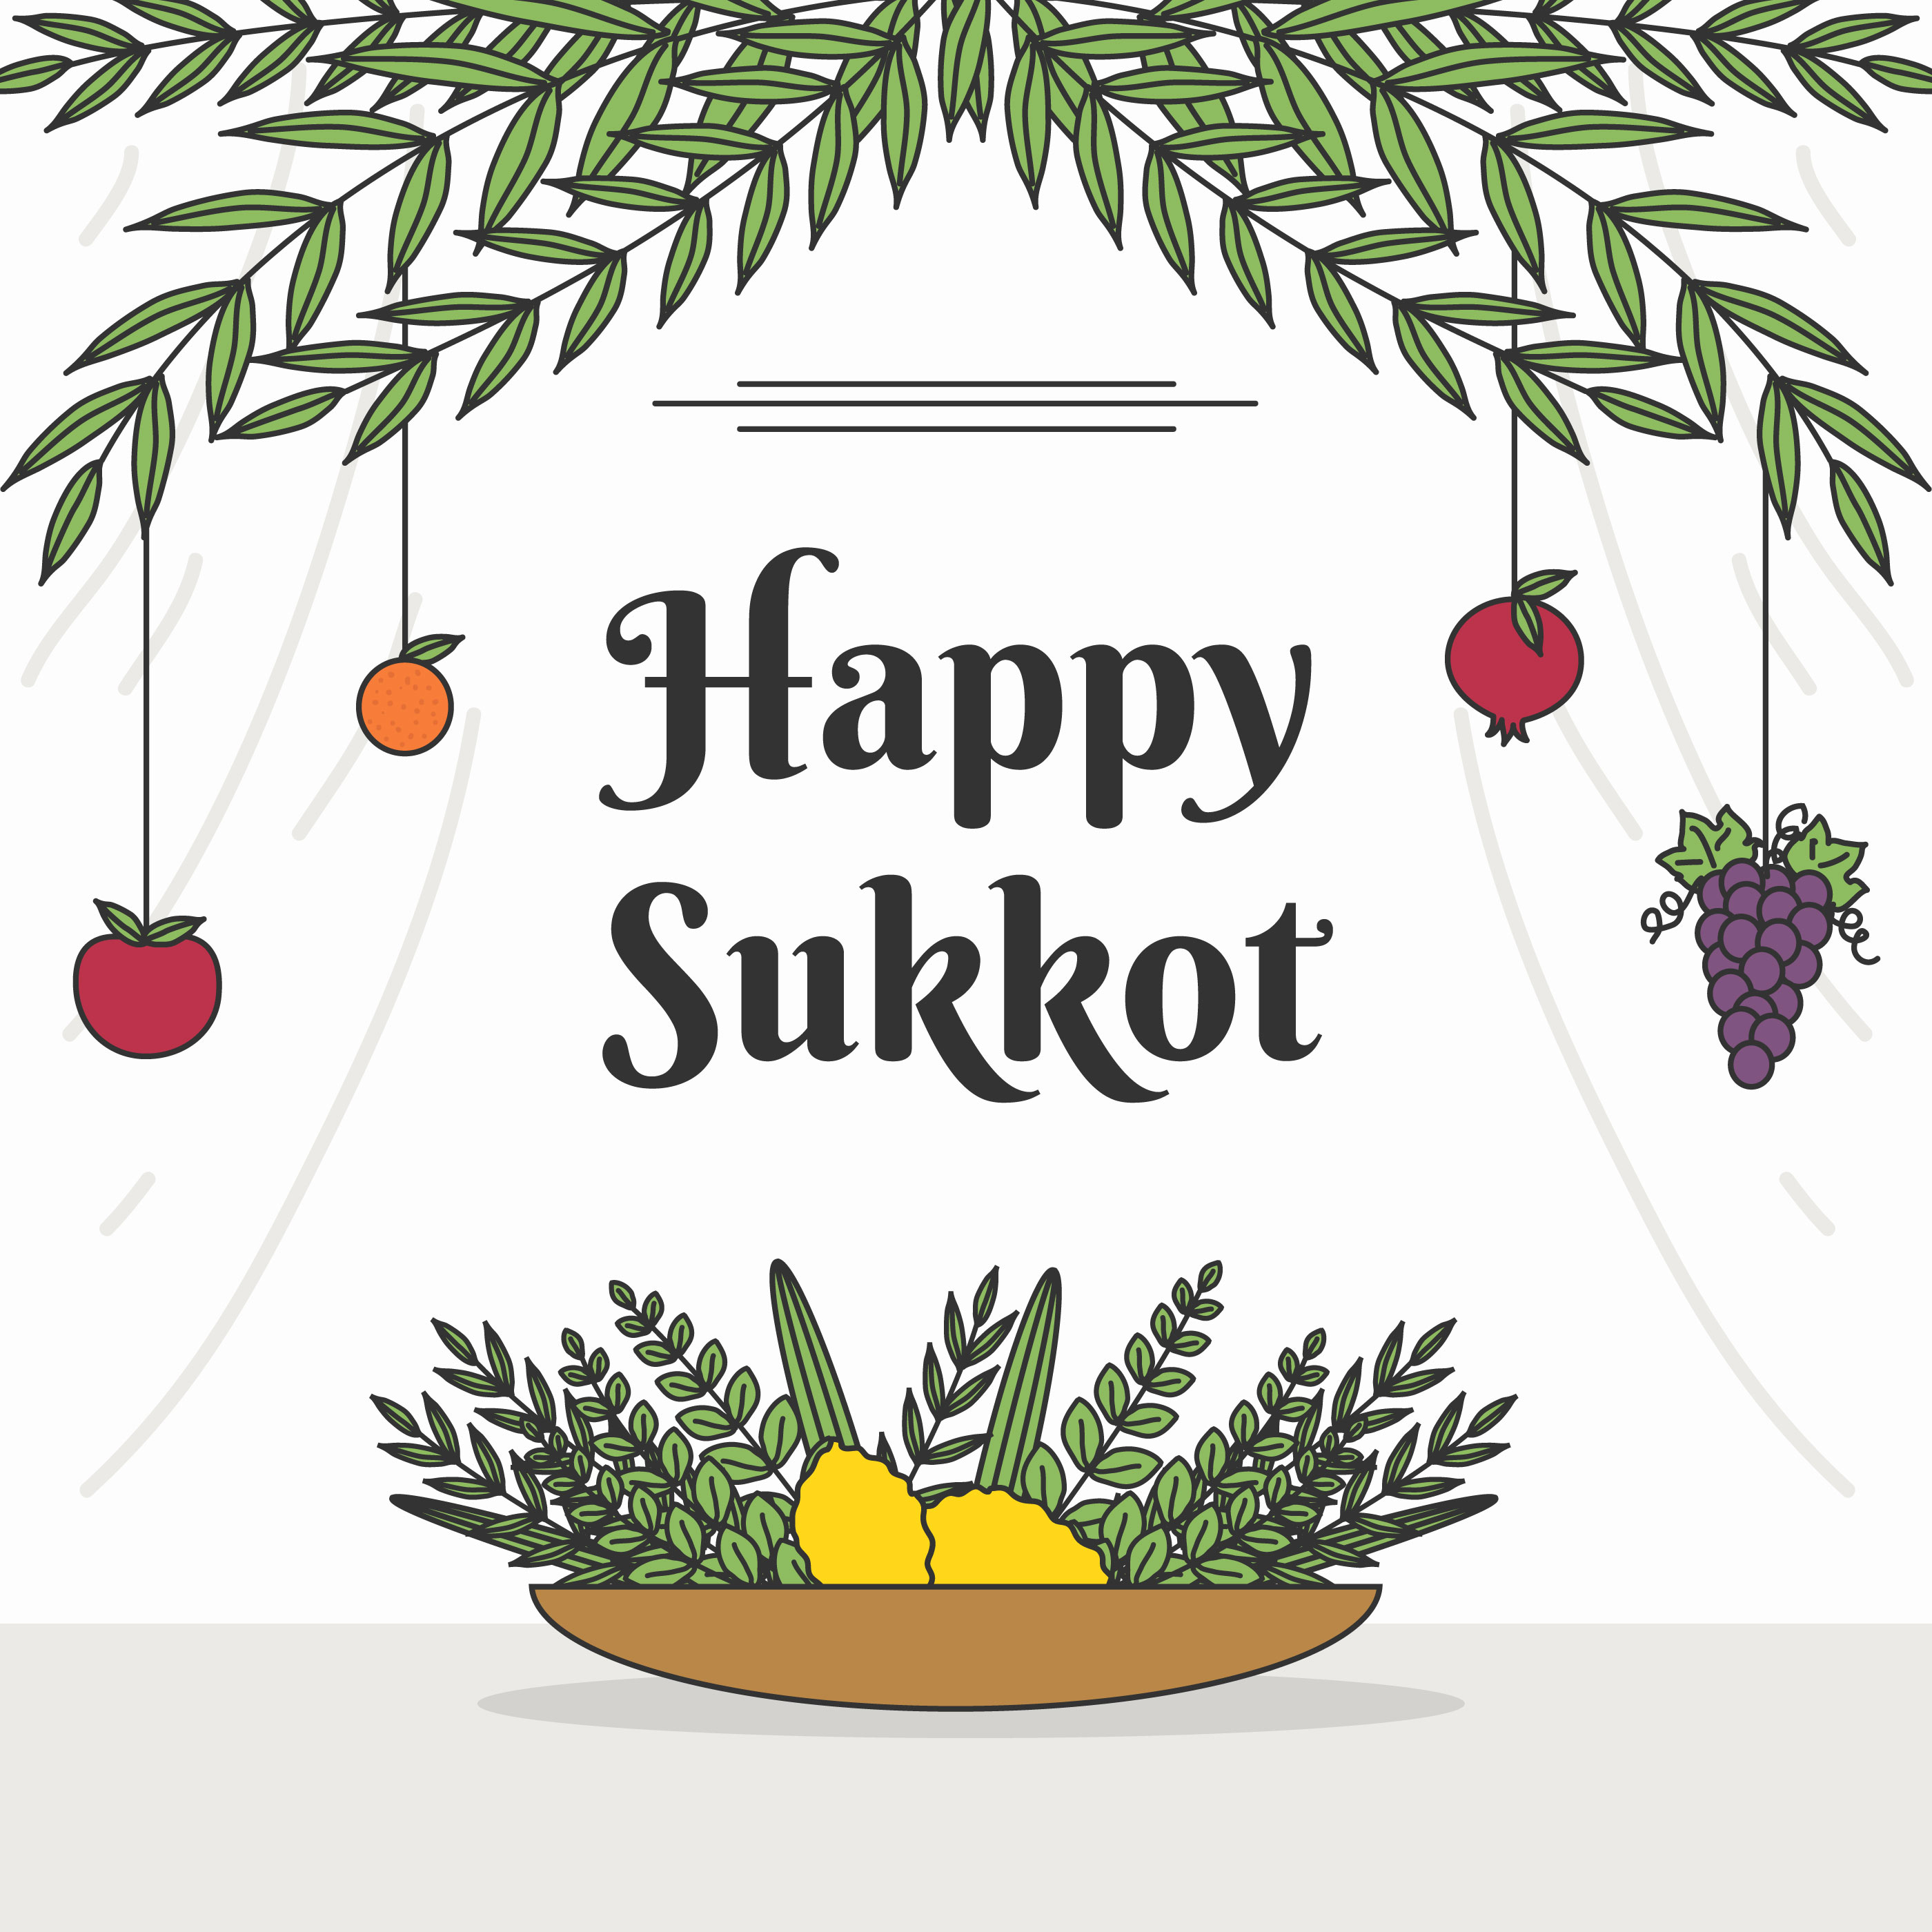 Sukkot Free Vector Art 223 Free Downloads